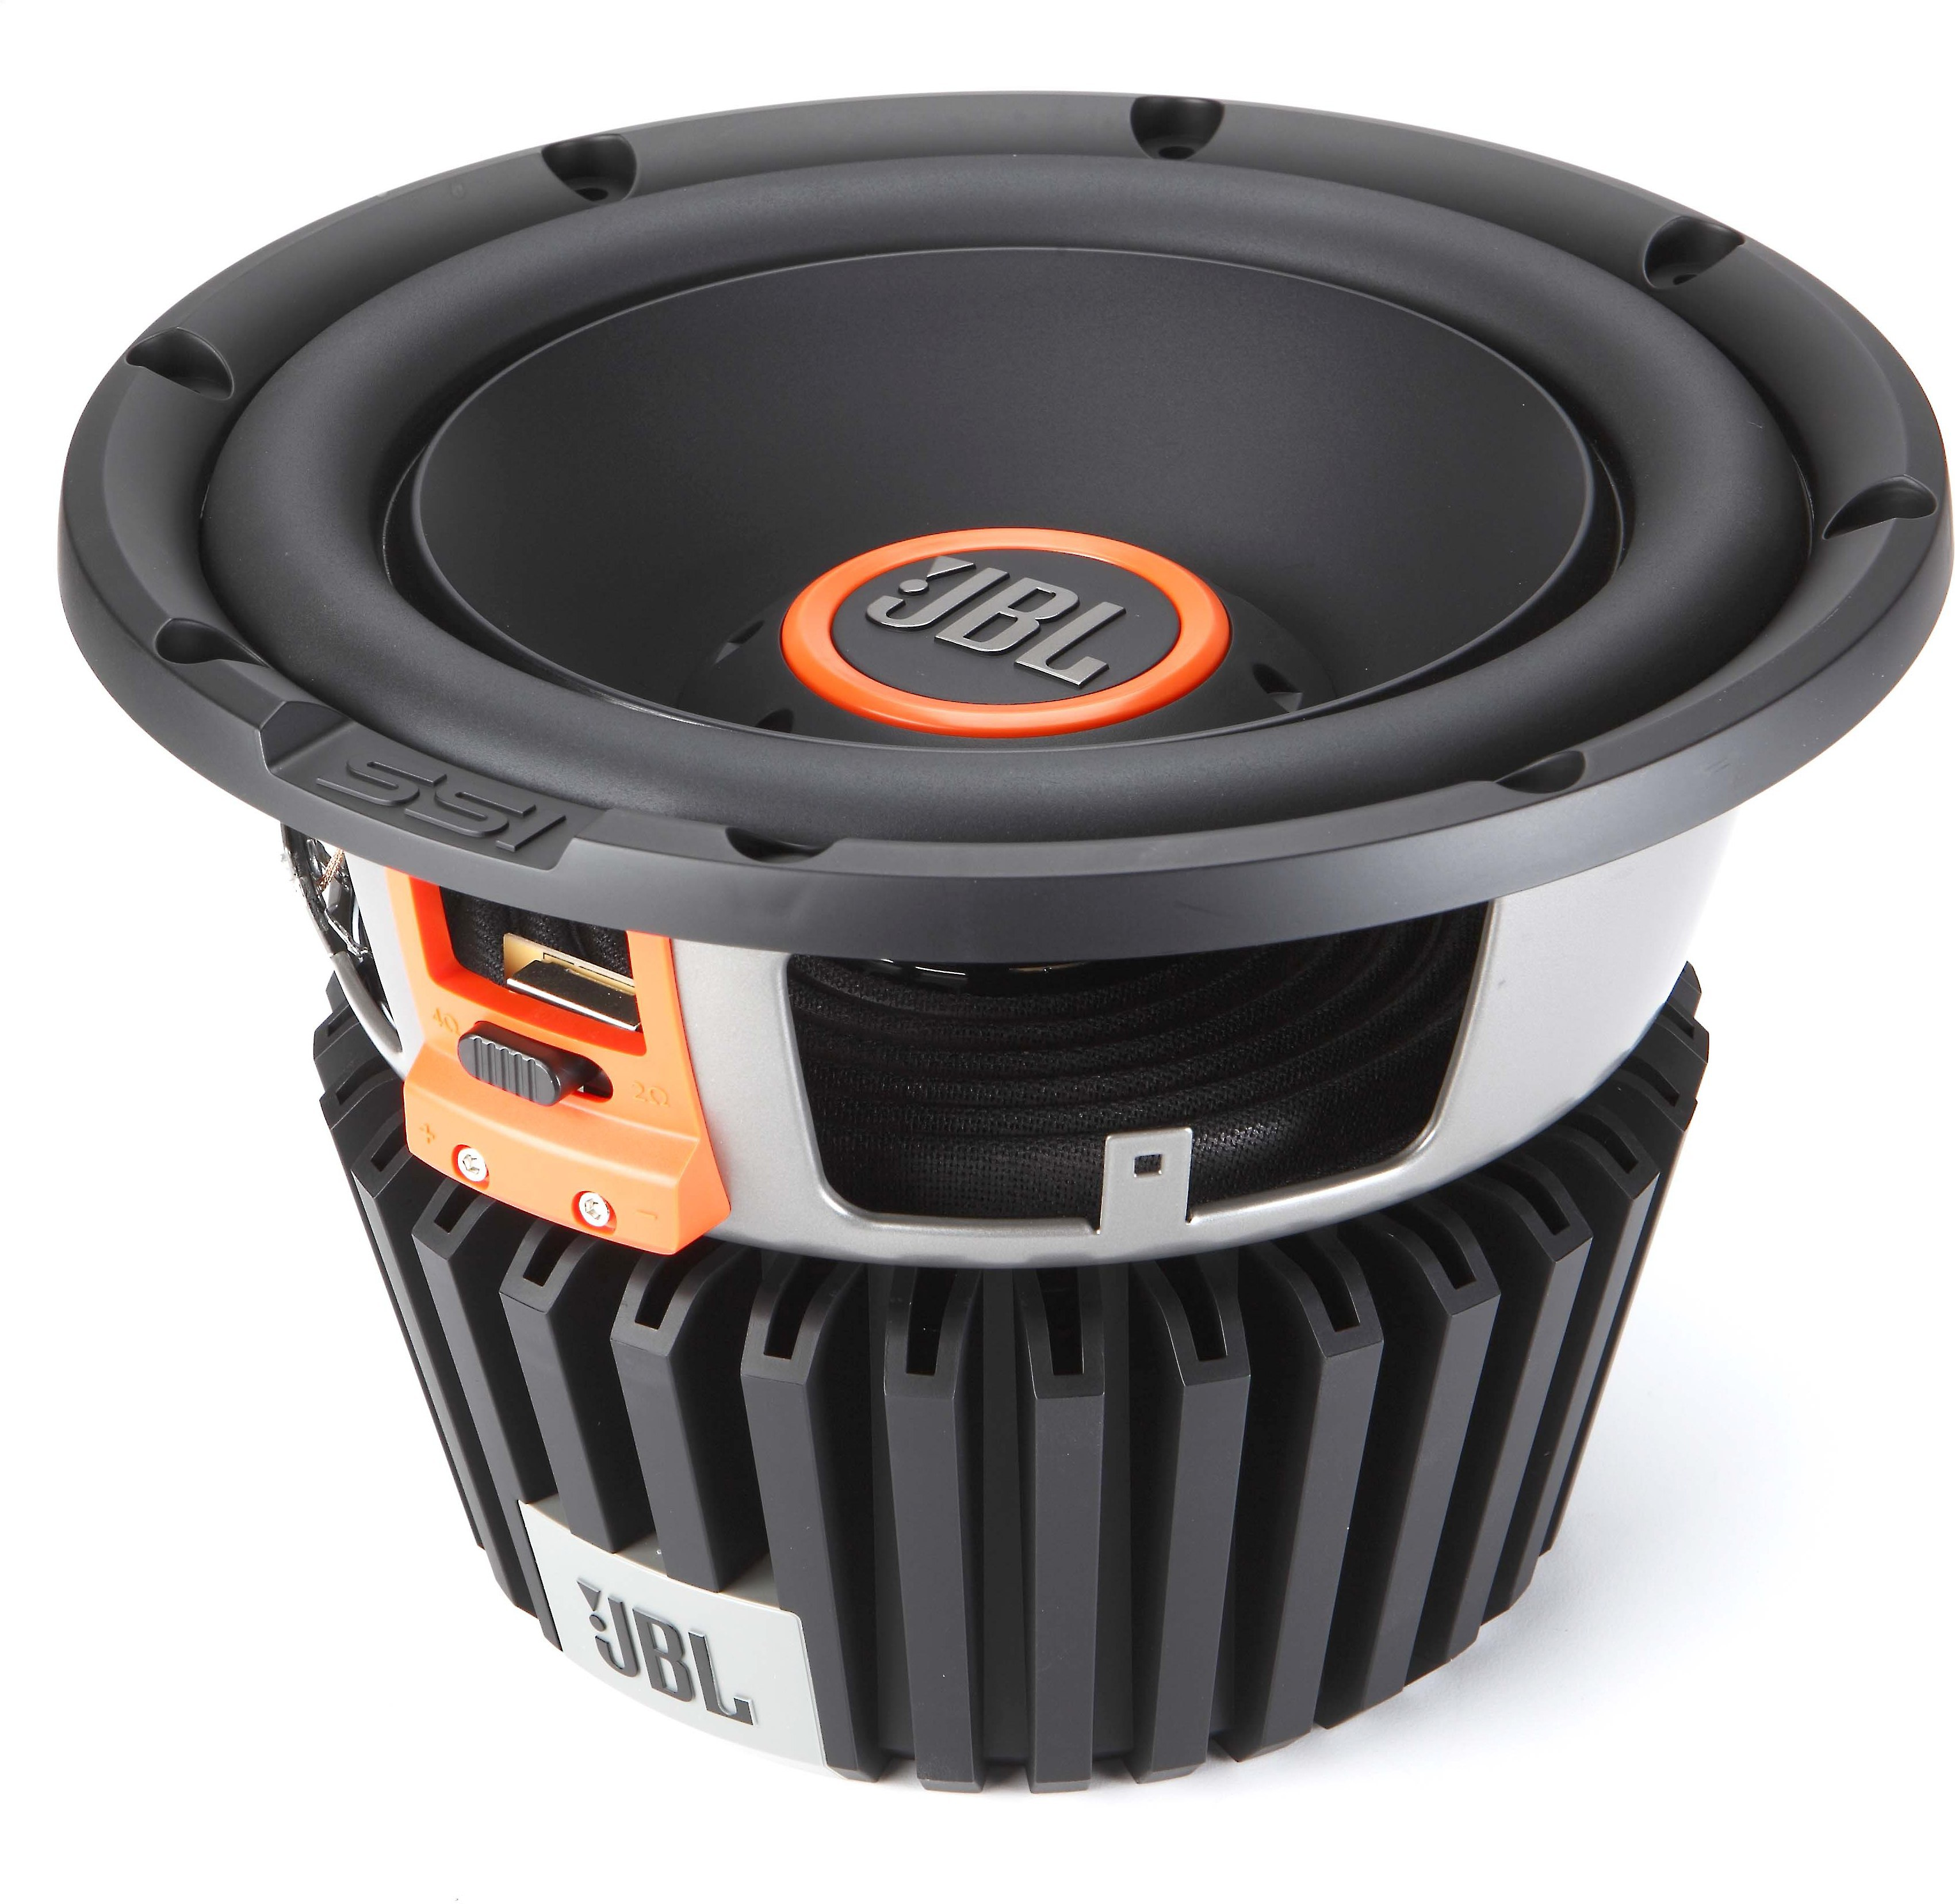 """JBL S3-1024 Series III 1350 Watts 10/"""" Selectable 2 or 4 Ohm Impedance Subwoofer"""